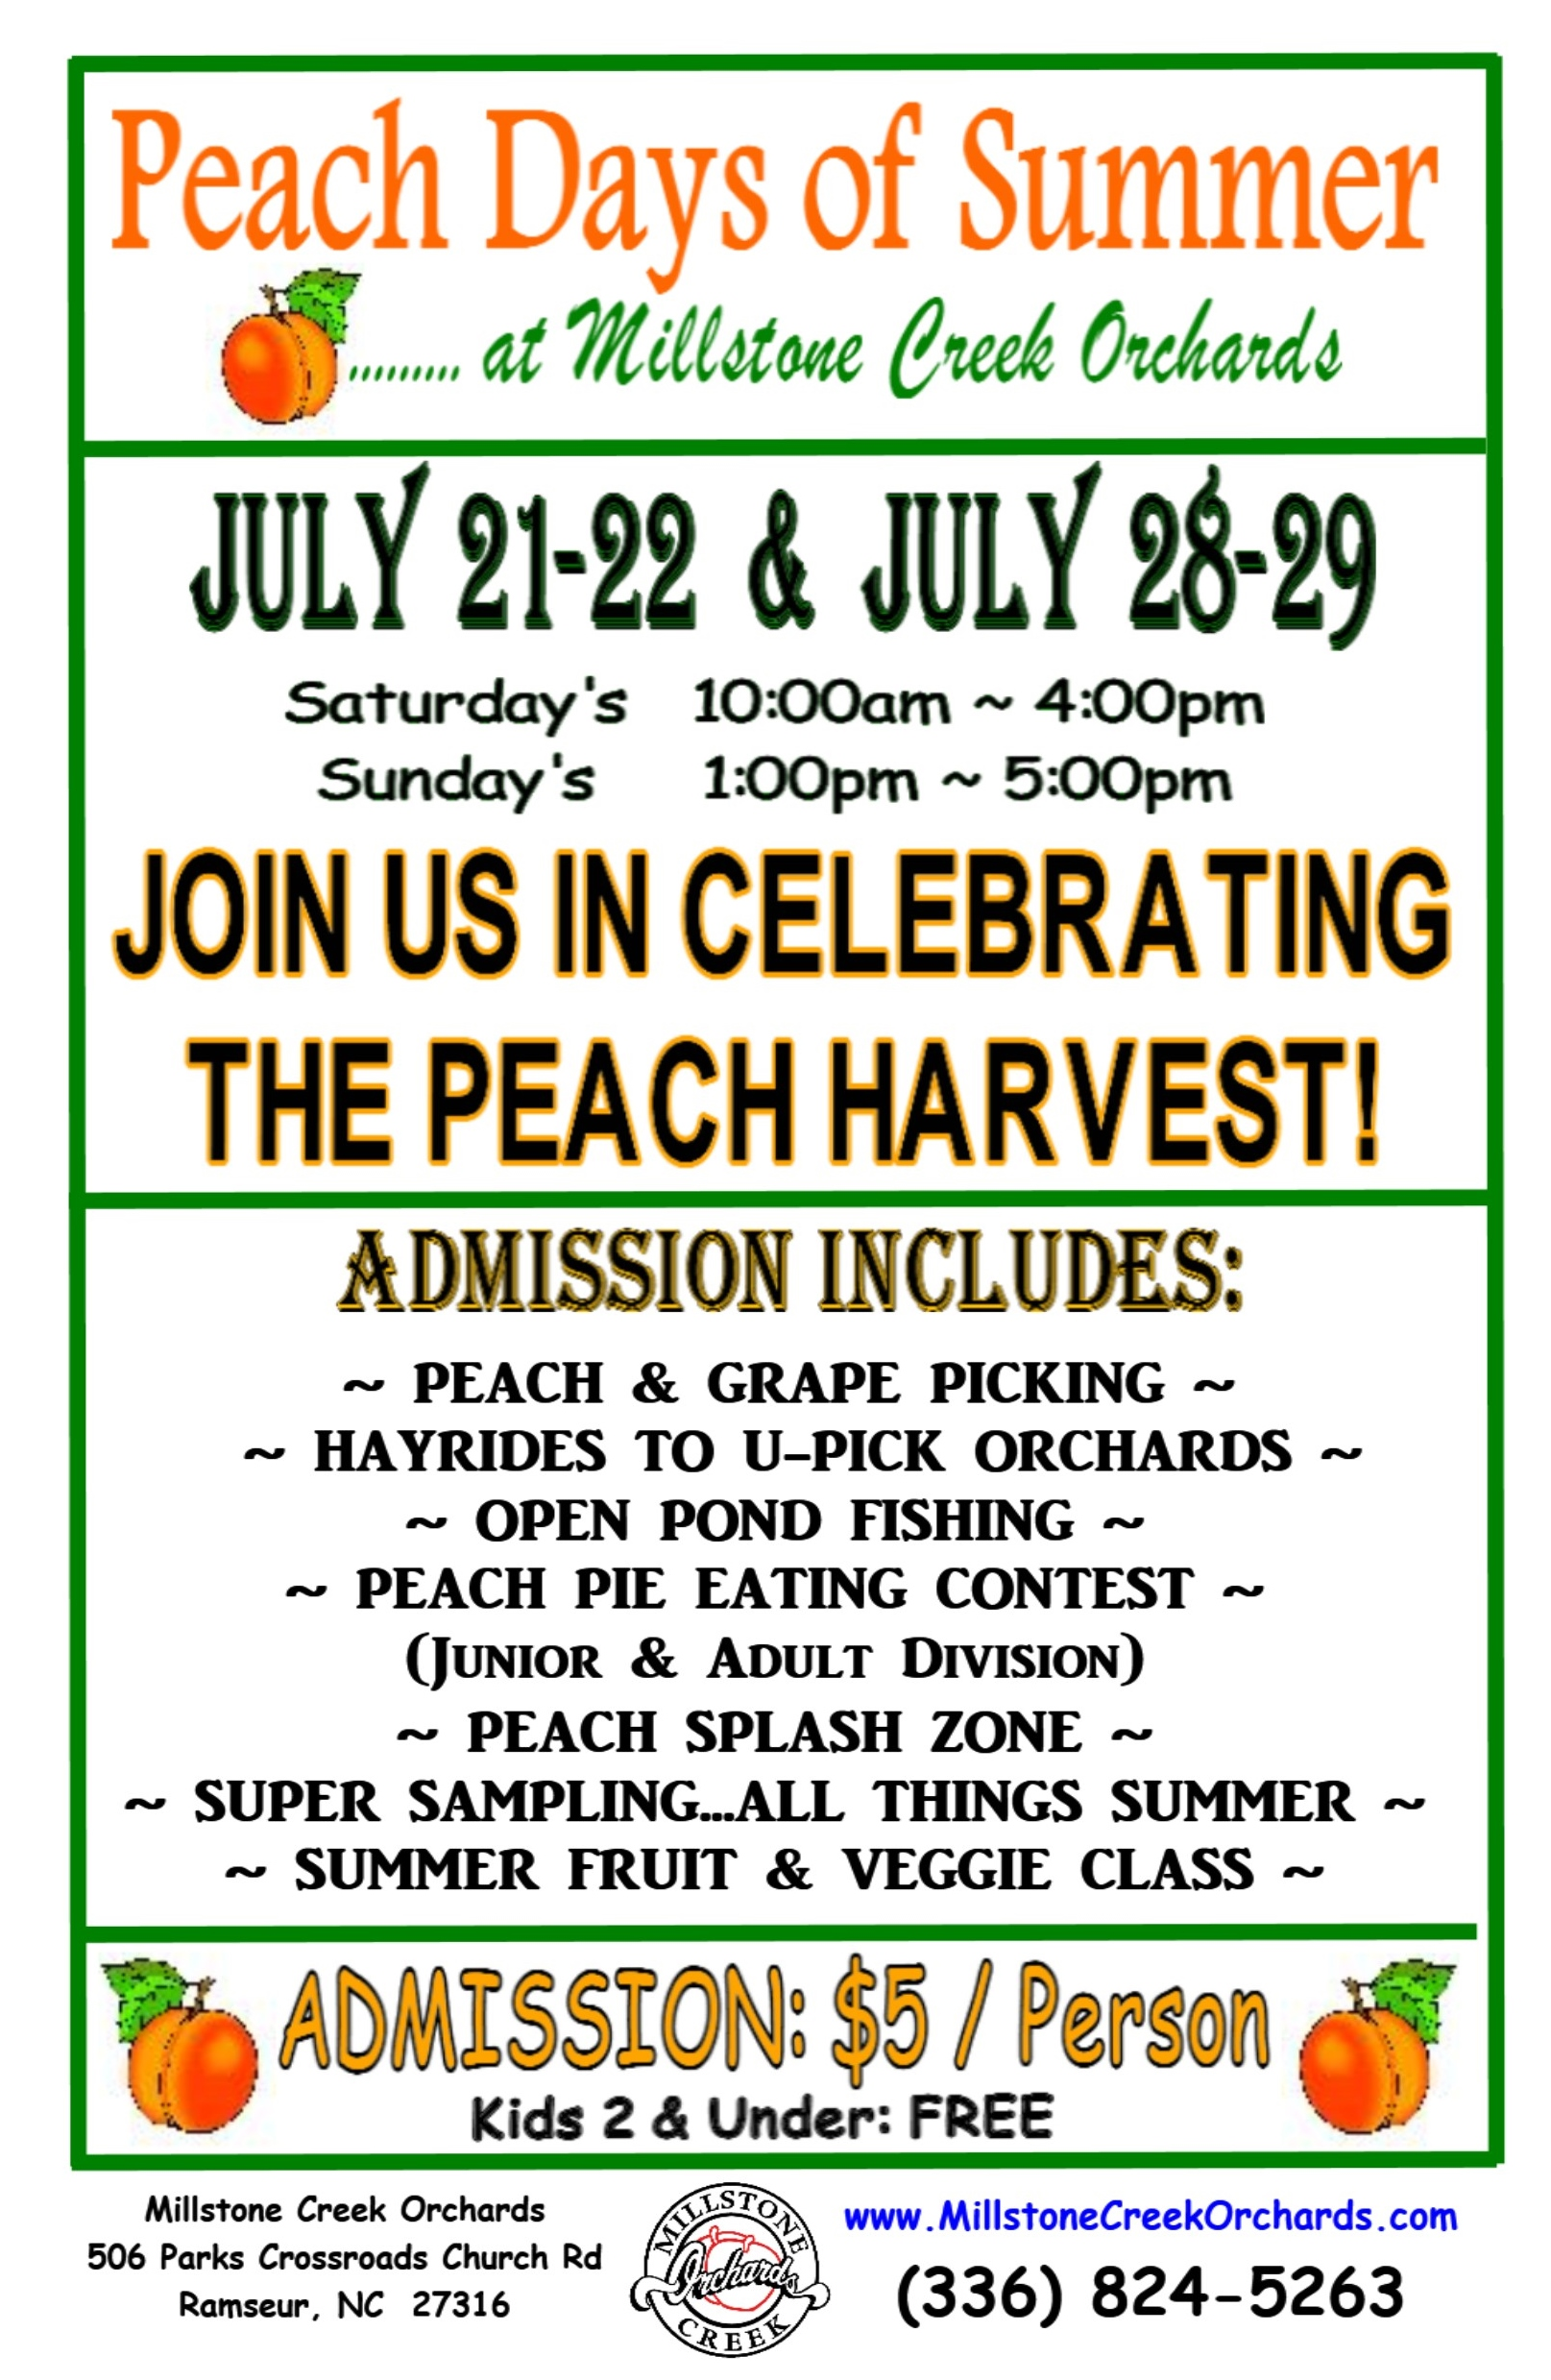 - Join us as we celebrate the Peach (and Grape) harvest with orchard family fun.  Admission includes Upick Peach Access, Hayrides, Super Sampling - All Things Peachy, Summer Fruit & Veggie Class, Open Pond Fishing, Peach Pie Eating Contest (Jr. & Adult Division) and Peach Splash Water Zone.  Kids 2 & under: FreePURCHASE TICKETS TO JOIN THE FUN!